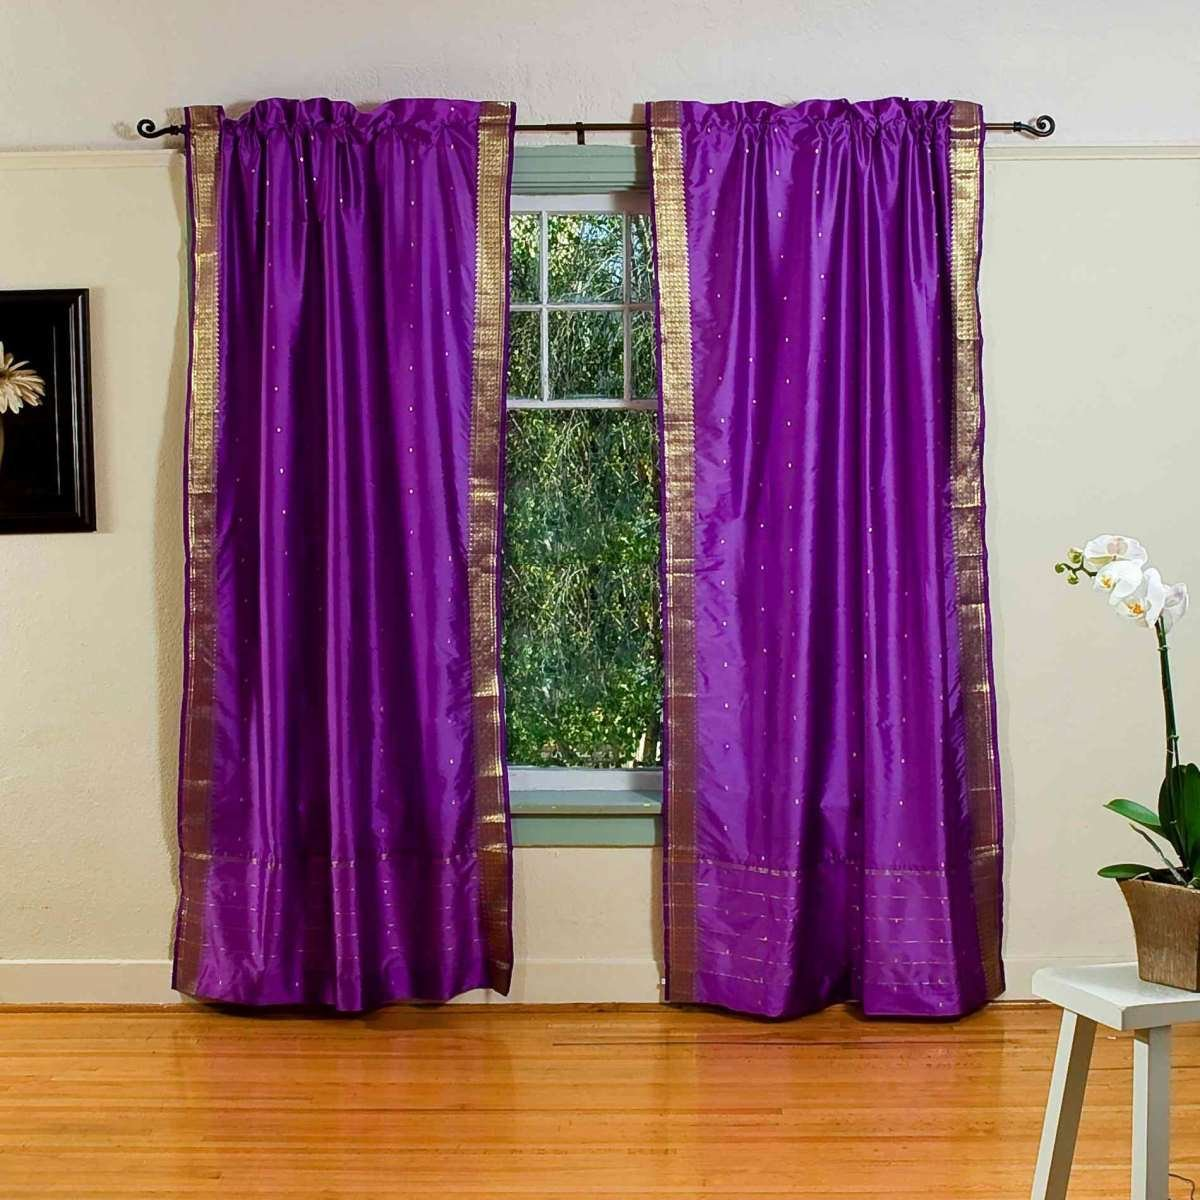 Indian Selections Lined-Purple Rod Pocket Sheer Sari Cafe Curtain/Drape - 43W x 24L - Piece